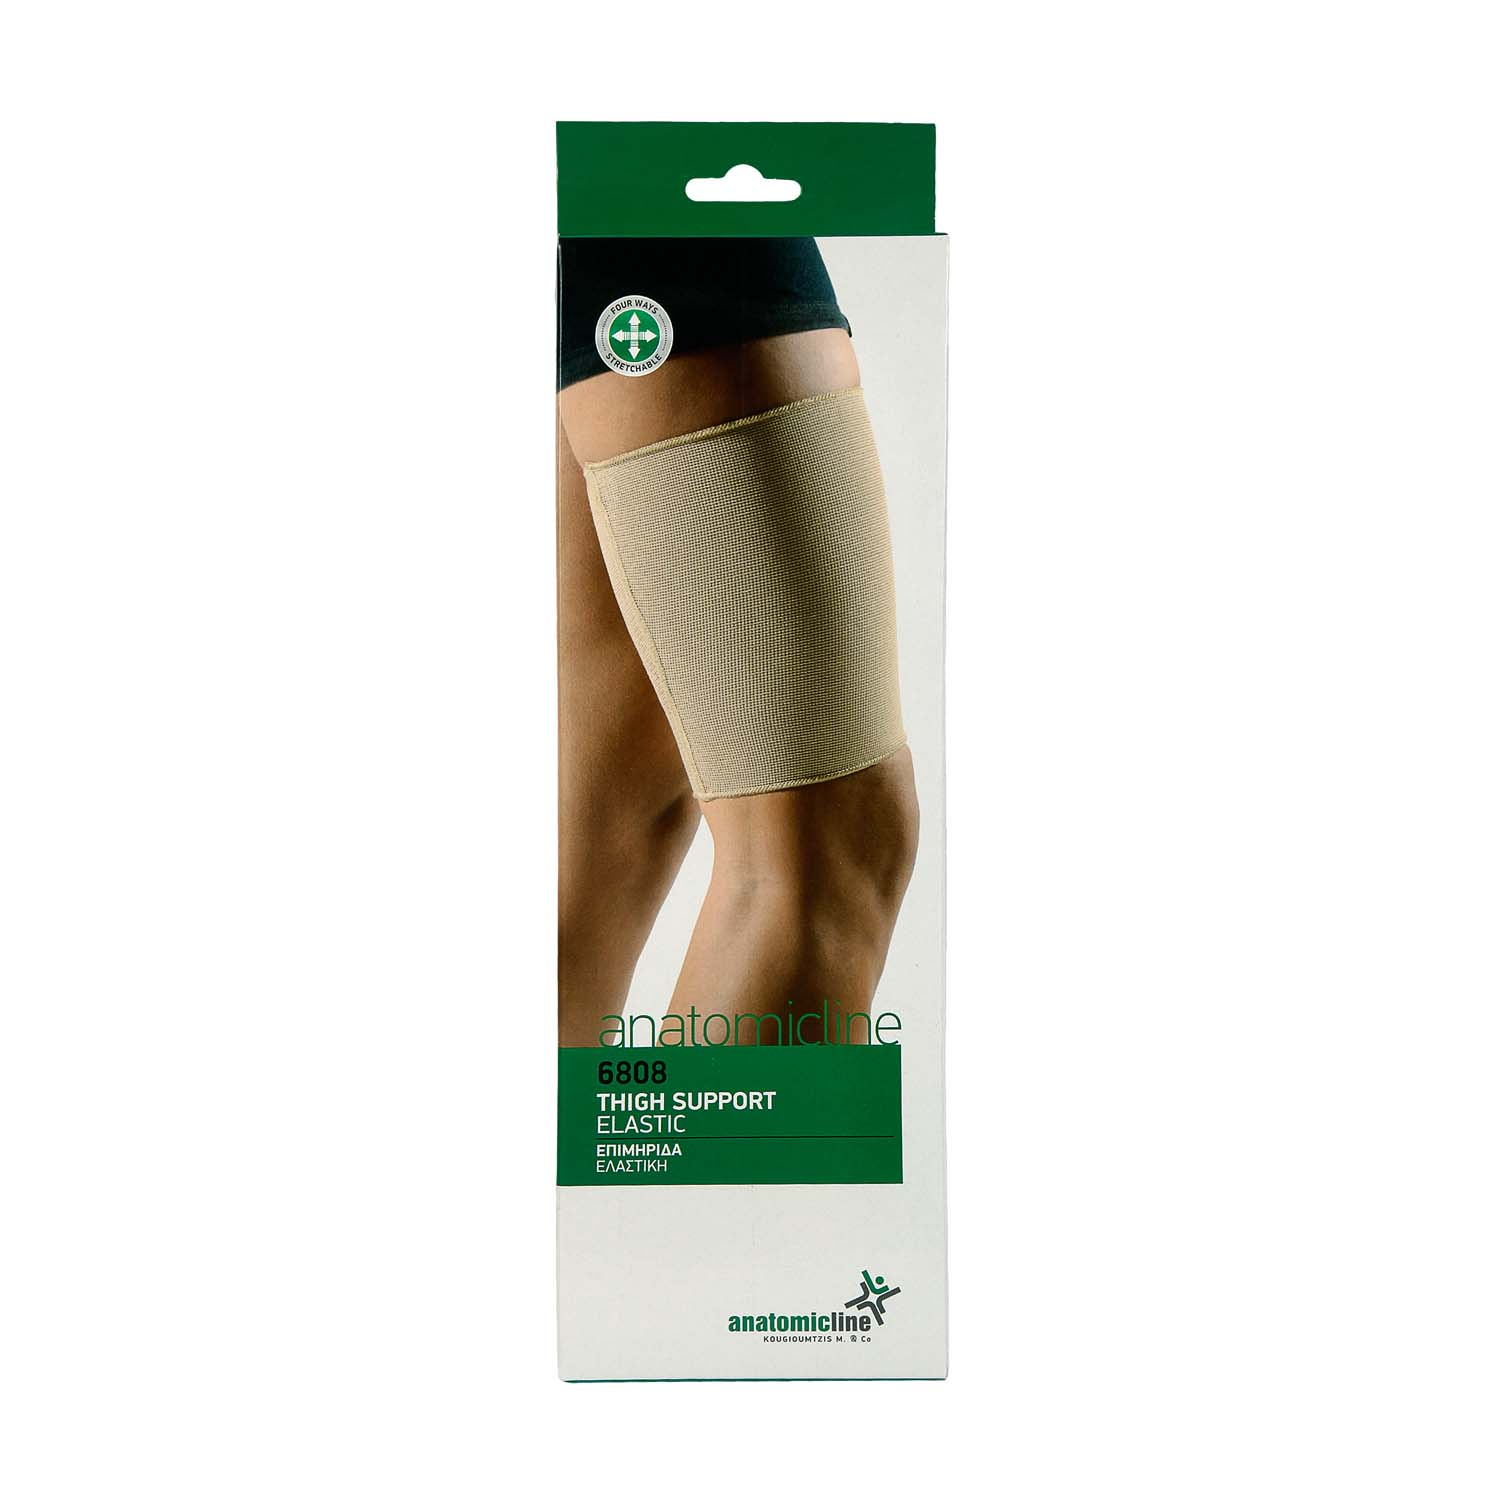 Thigh support - elastic